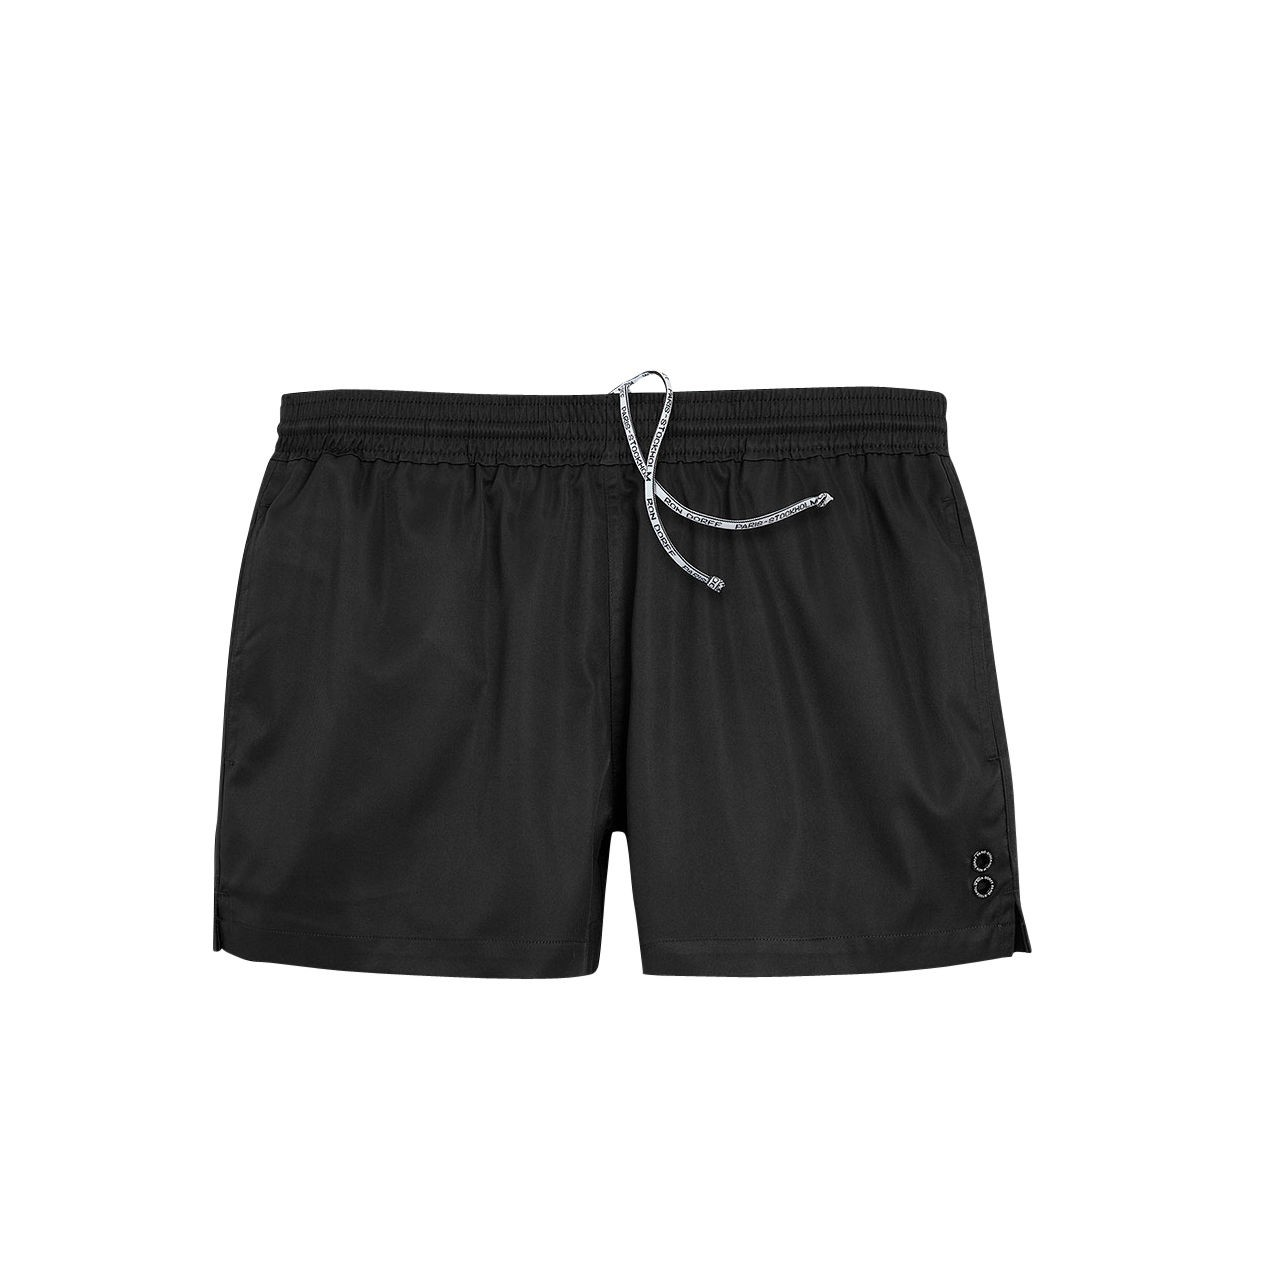 Ron Dorff Exerciser Shorts in Black